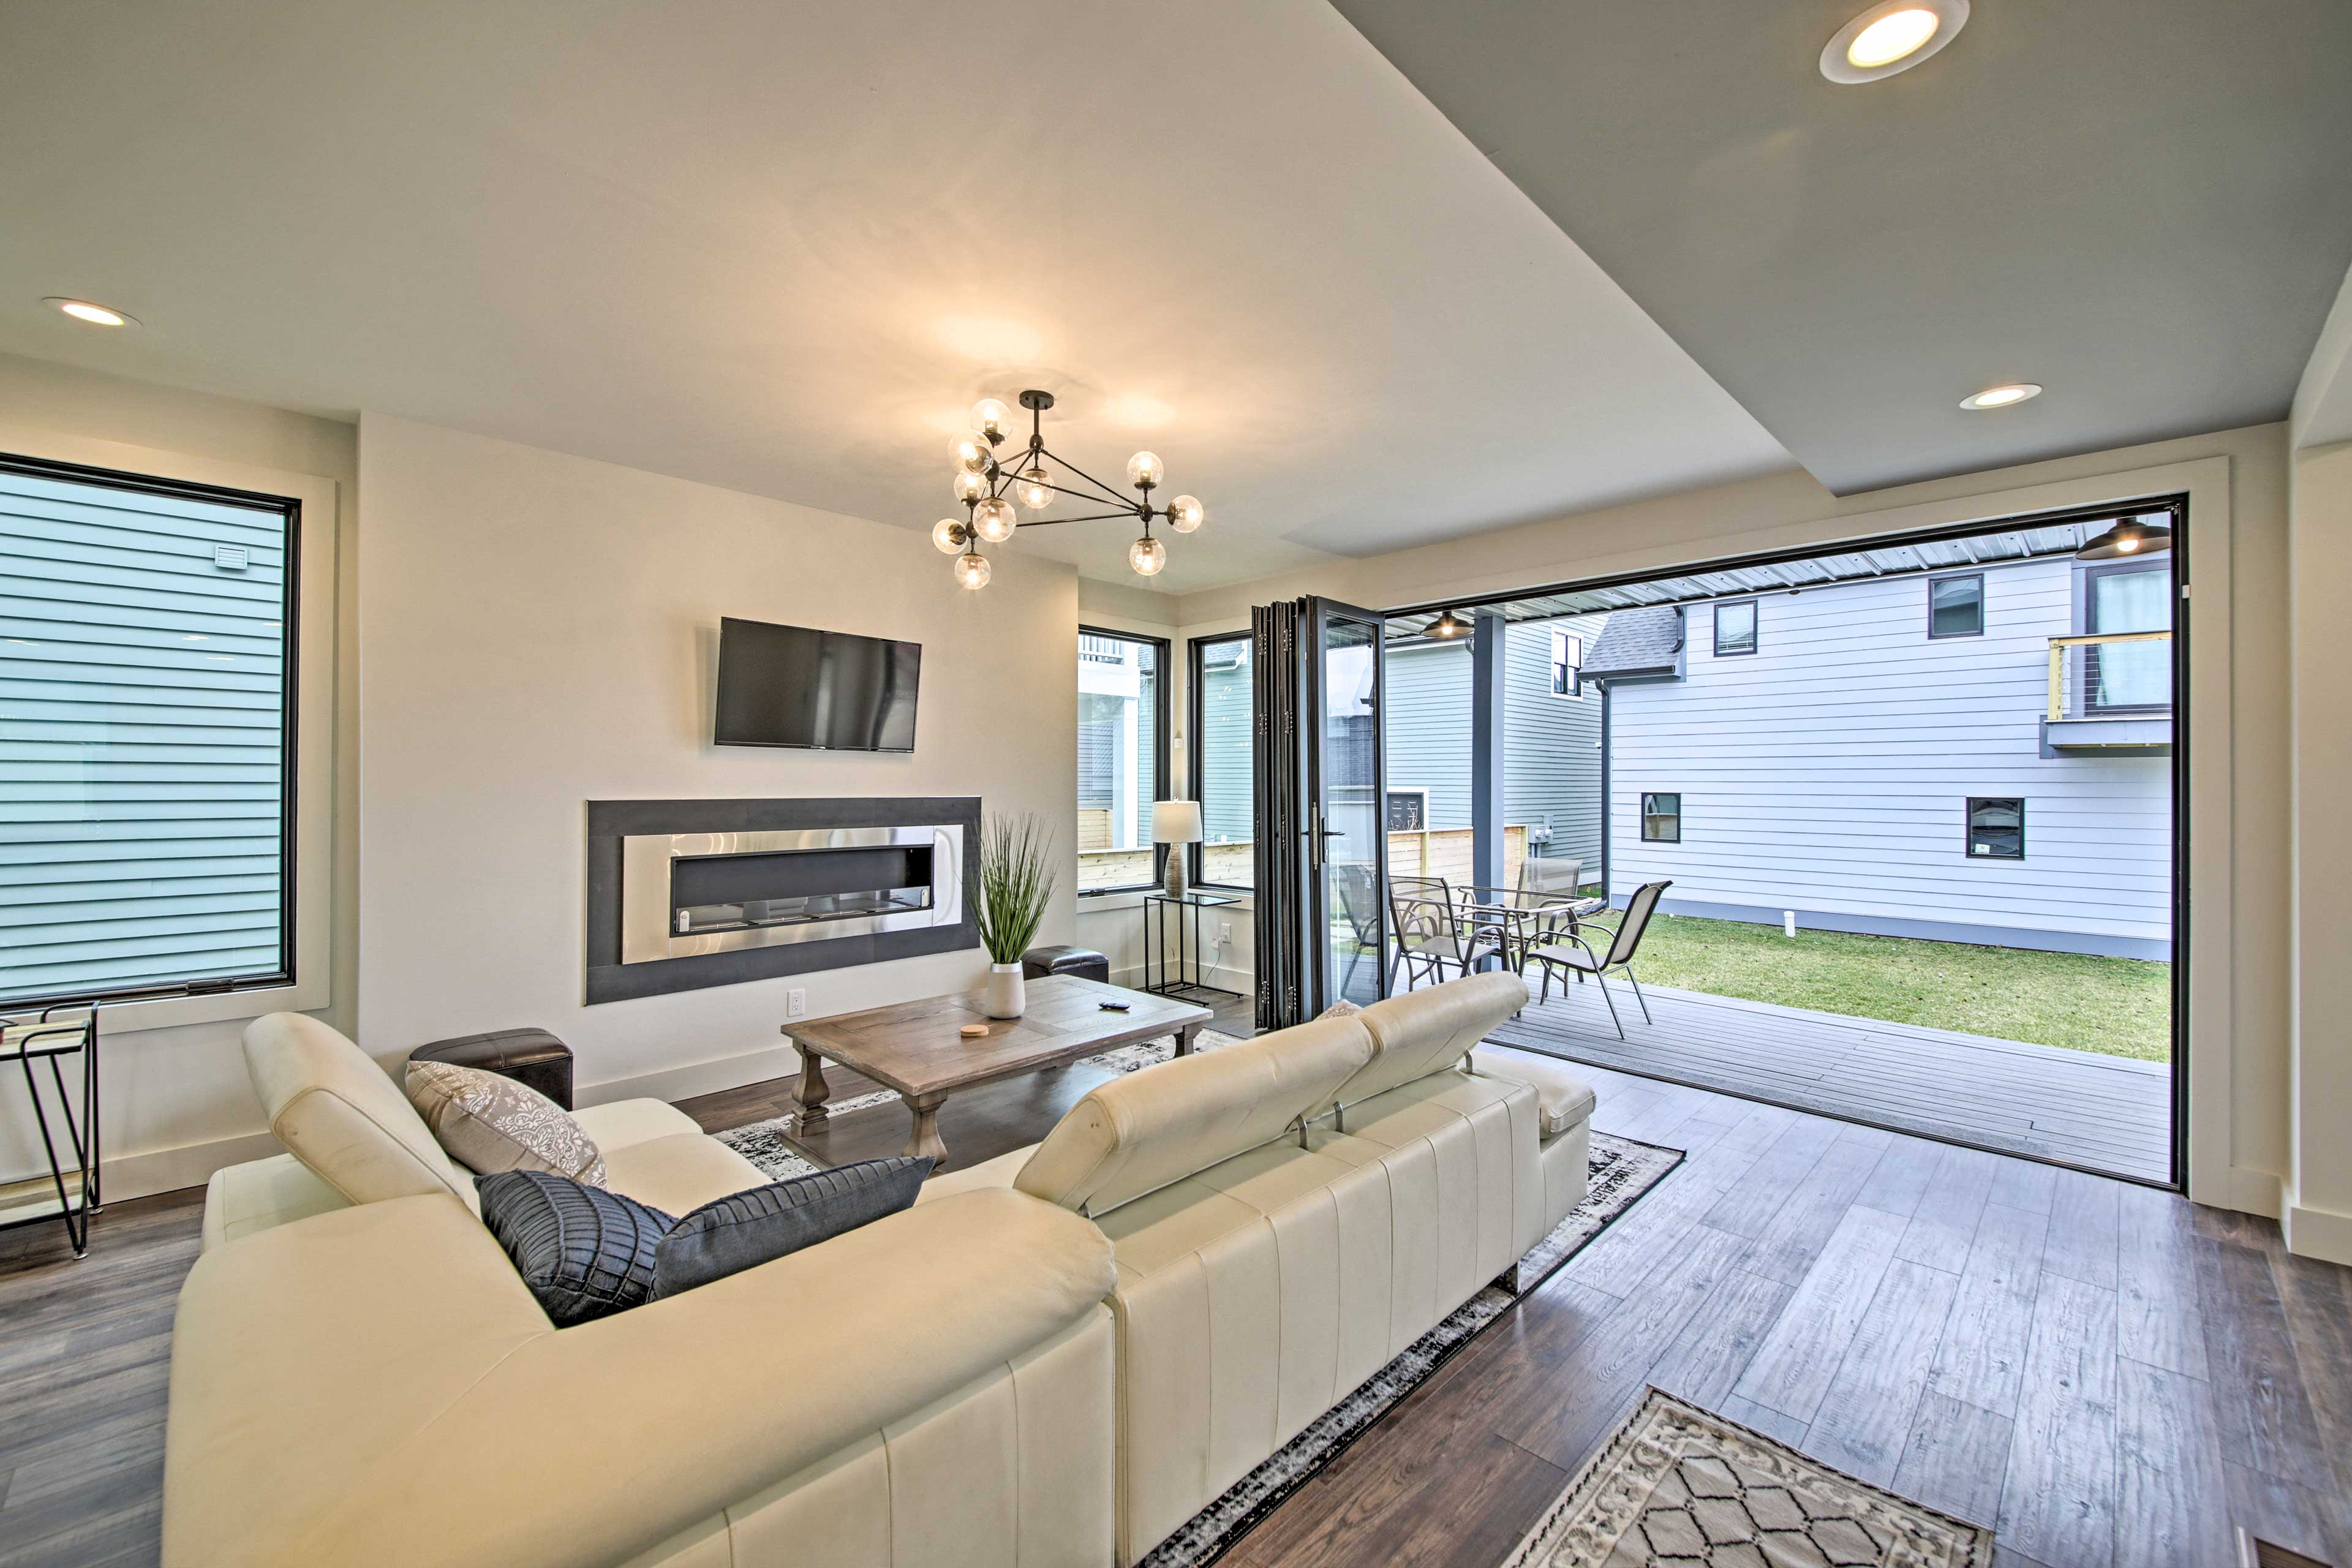 The spacious living room boasts an accordion glass door and modern fireplace.